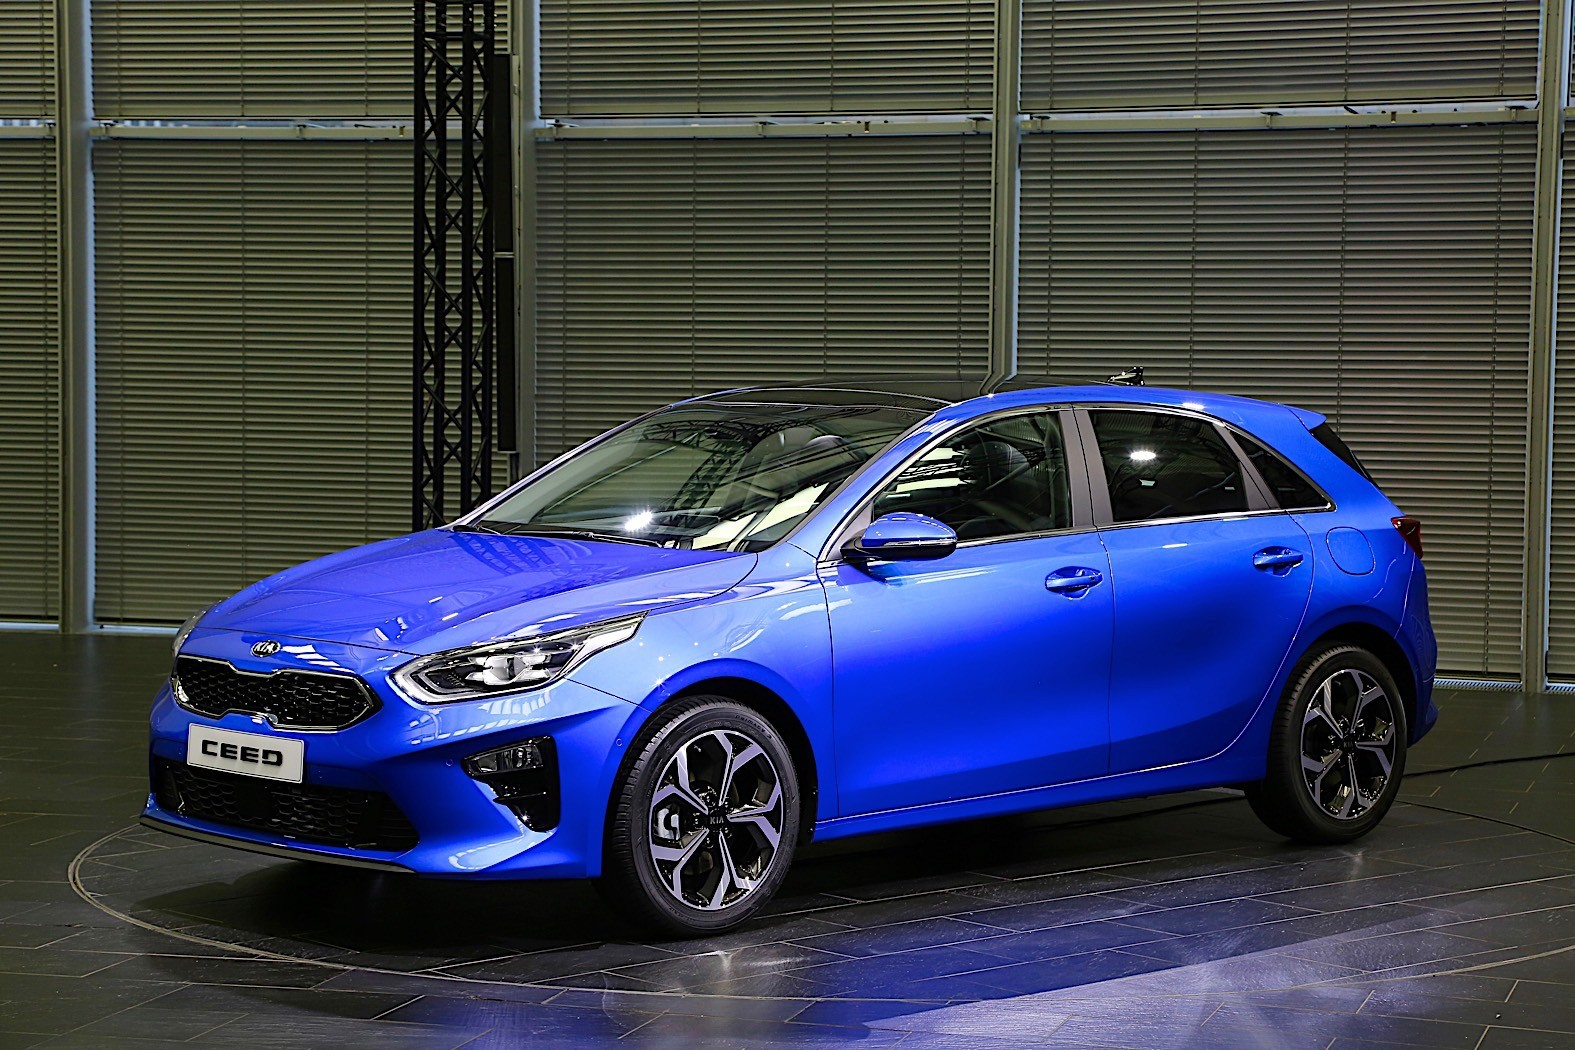 2019 kia ceed gt warm hatchback coming with close to 200 bhp autoevolution. Black Bedroom Furniture Sets. Home Design Ideas